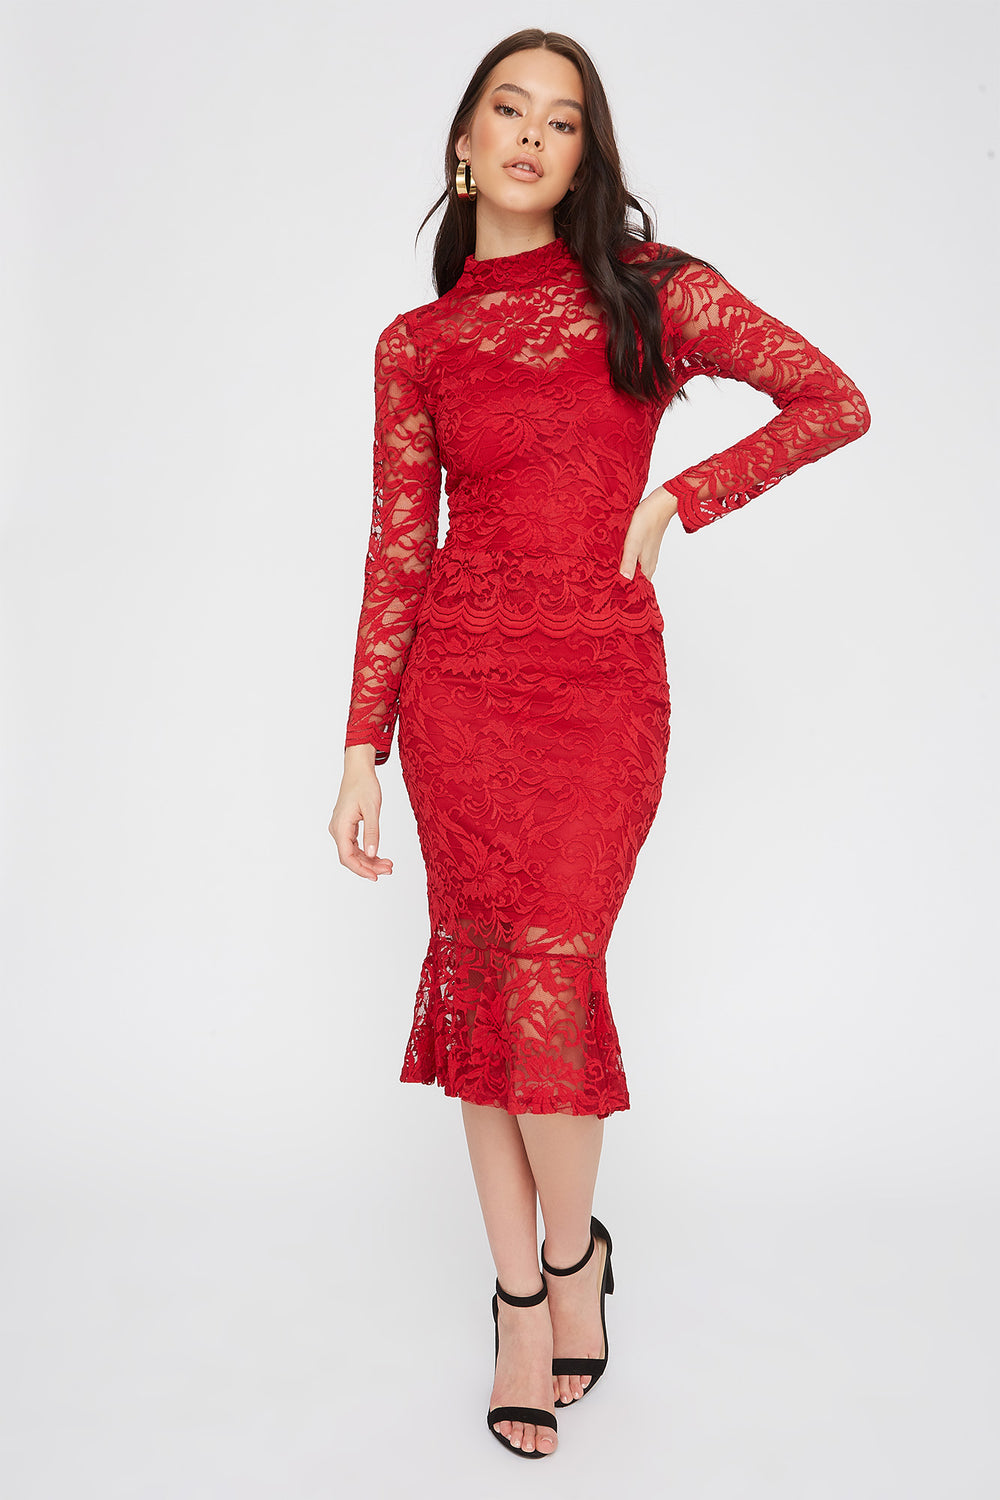 Lace Mock Neck Long Sleeve Red